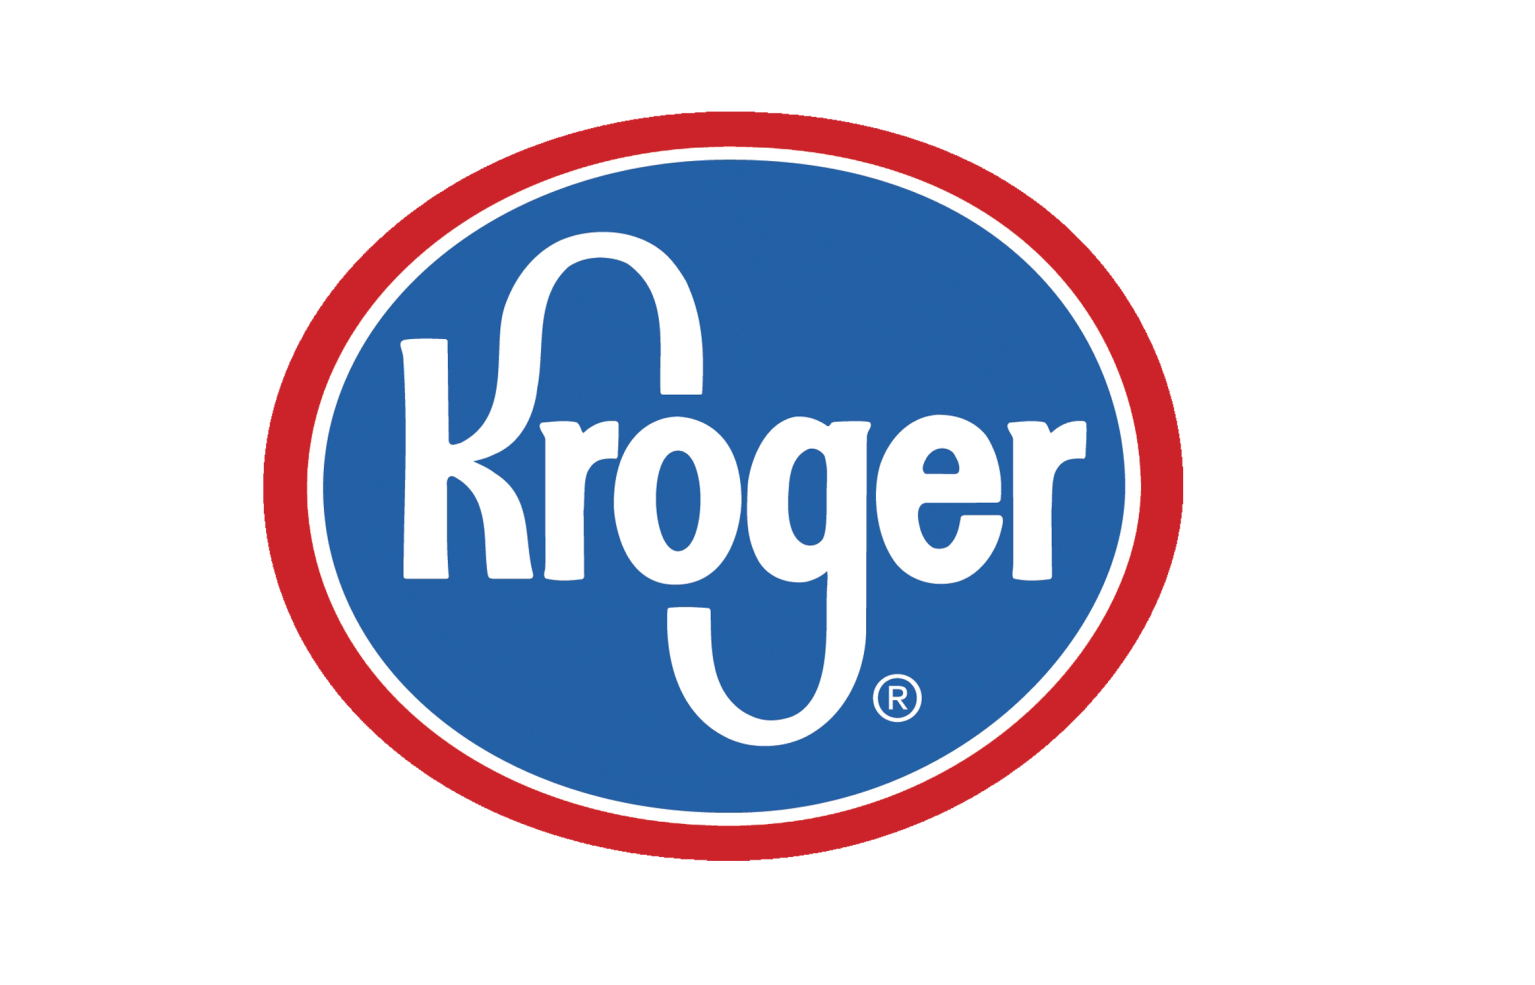 Kroger Community Rewards - Choose Bloomington Chamber Singers as your nonprofit of choice on your Kroger Plus account. Every time you shop, Kroger will donate a portion to us!